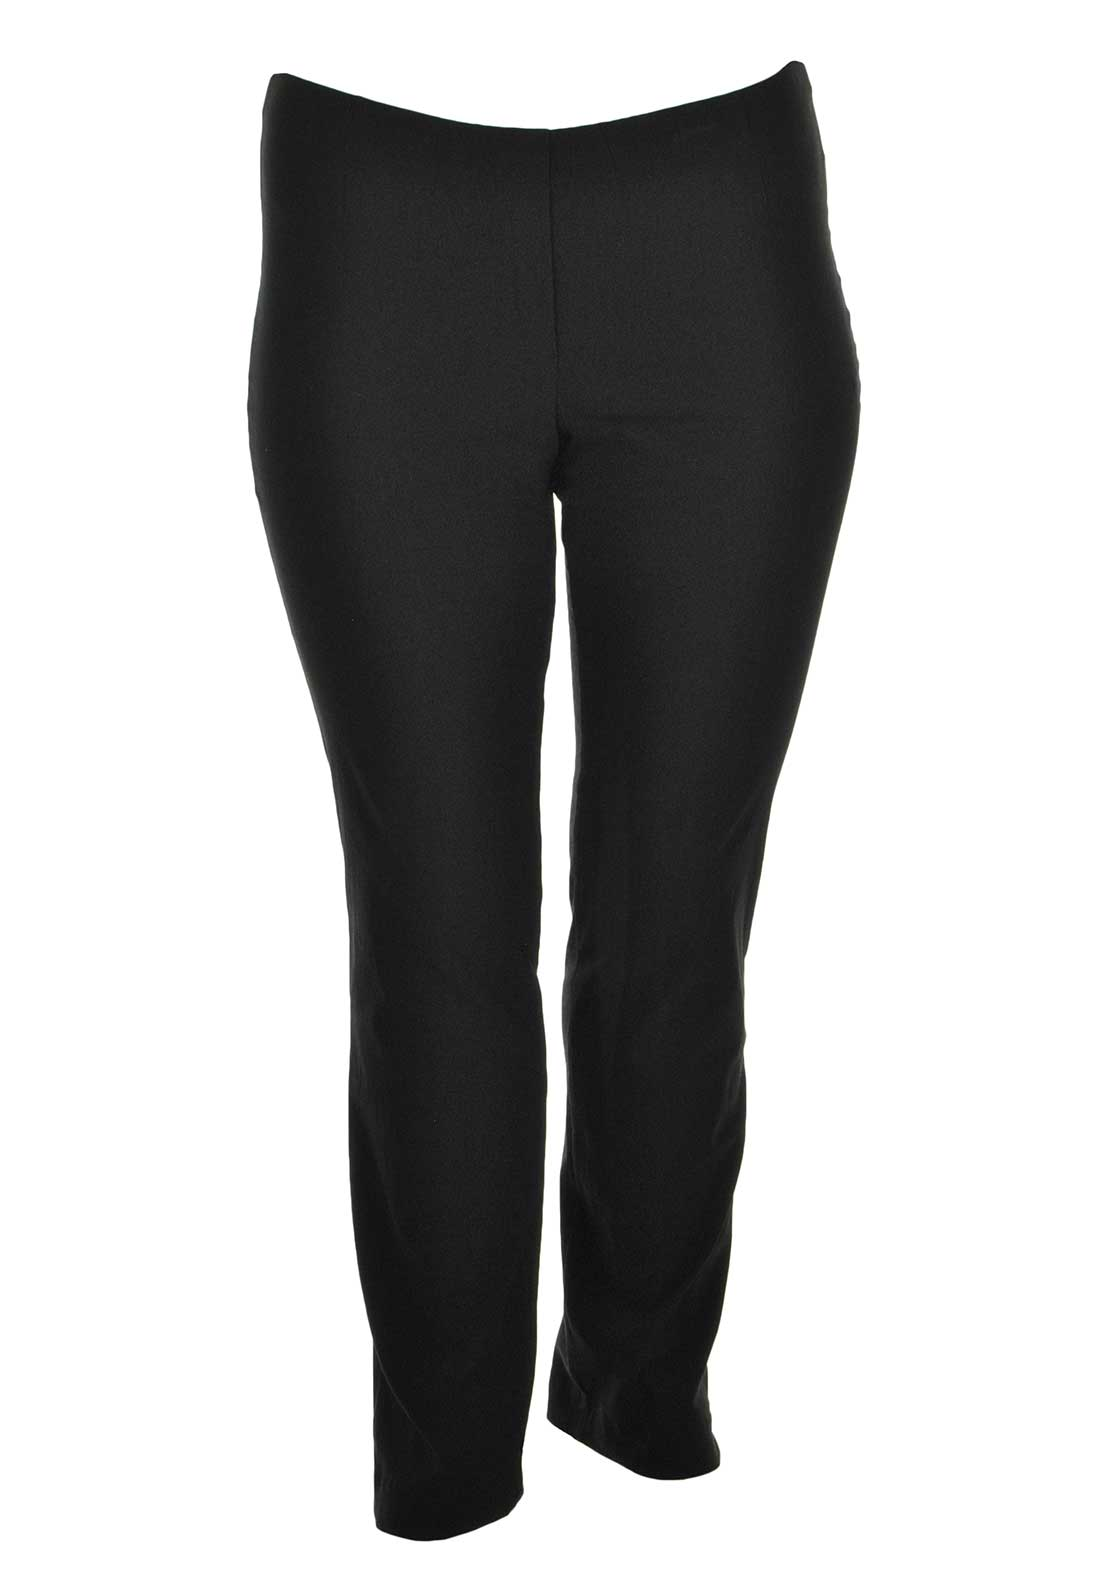 Doris Streich Slim Leg Trousers, Black